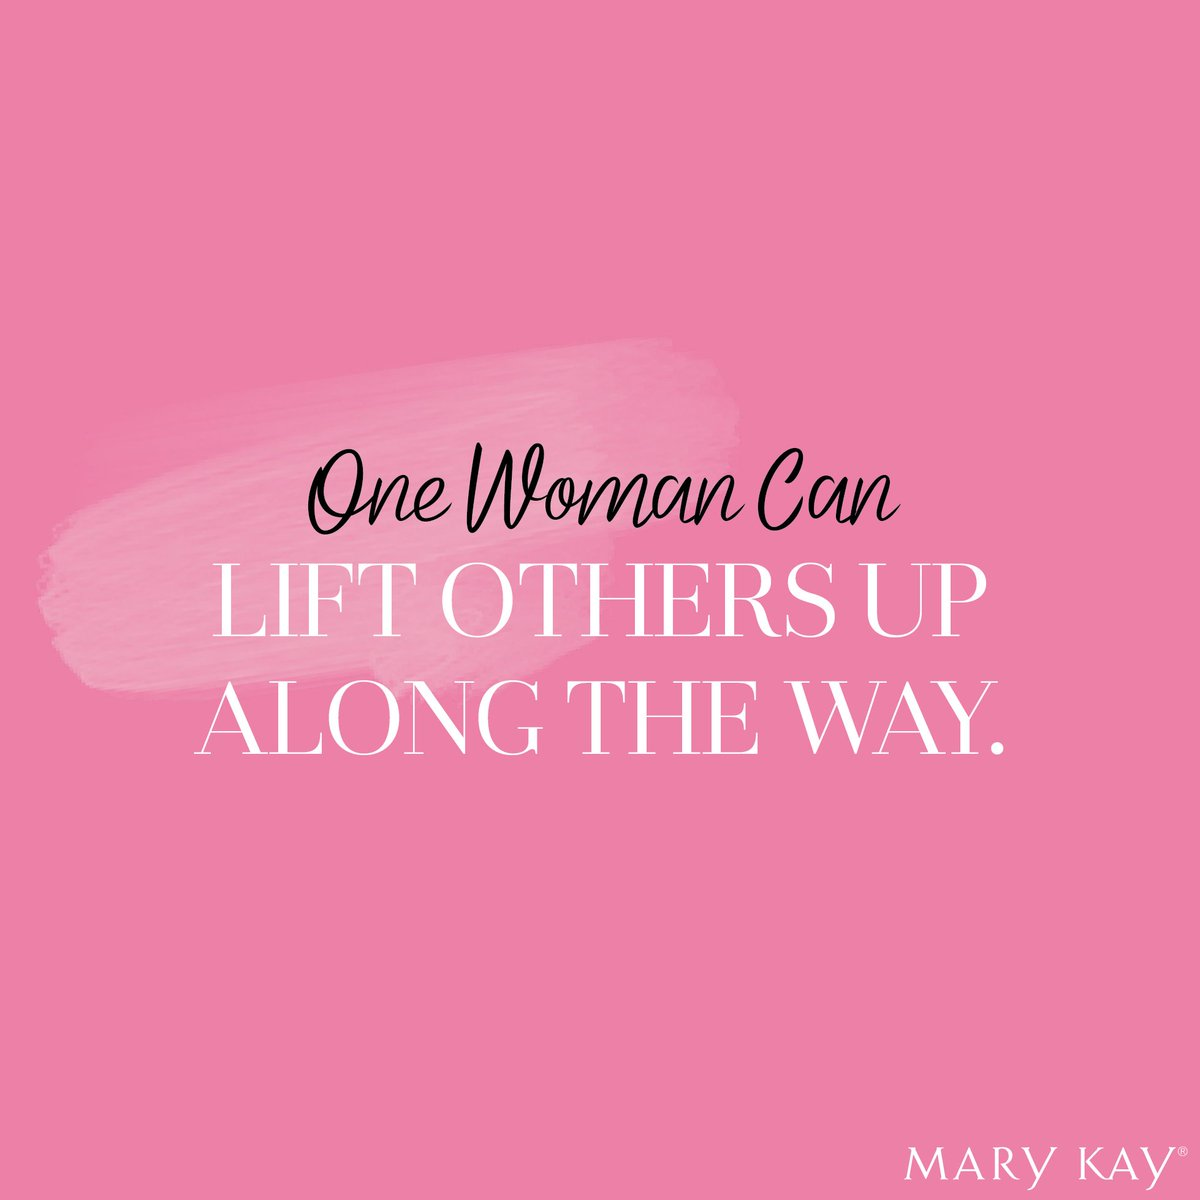 Mary Kay Uk On Twitter Empowered Women Empower Women Soon We Ll Be Celebrating Internationalwomensday And We Can Think Of No Better Opportunity To Inspire And Empower Womankind Than With A Message